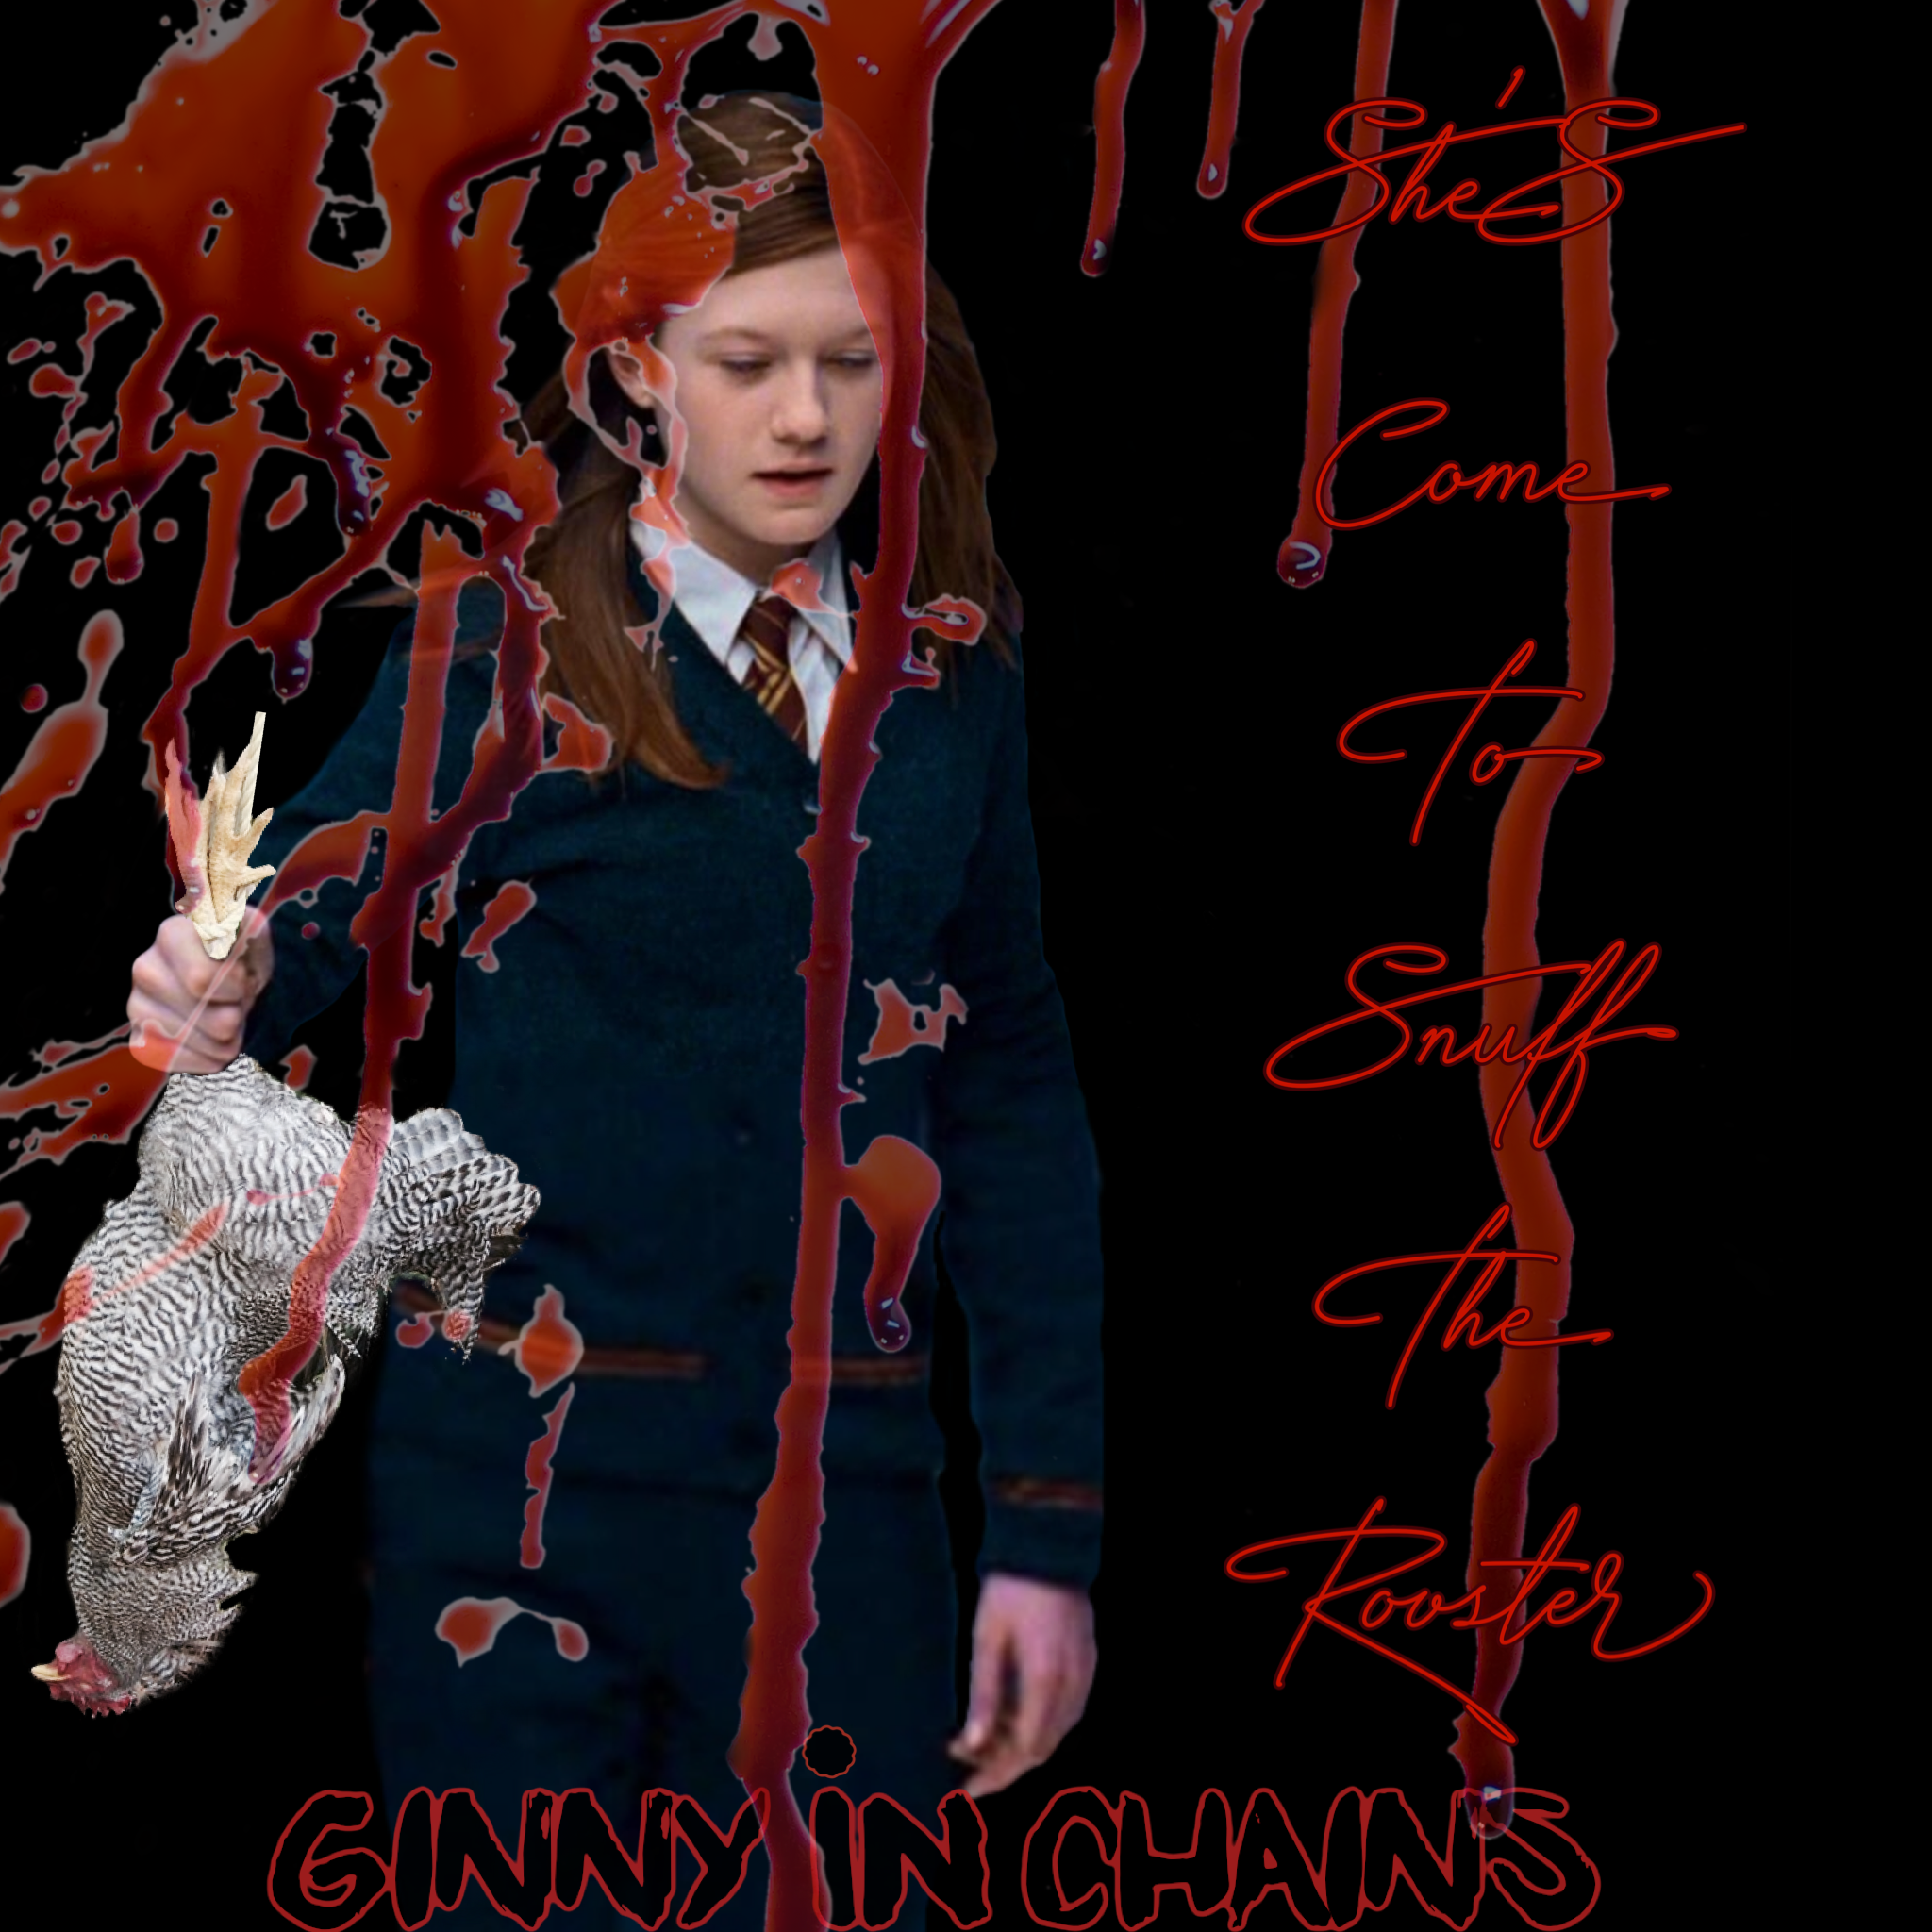 "A black square, styled as a CD cover, on which Ginny Weasley, looking distraught, holds a dead rooster by its feet. A blood splatter covers the image. The words ""She's come to snuff the rooster"" are written in red cursive letters along the right side. Along the bottom, printed as if it's the band name, the words ""Ginny in Chains"""